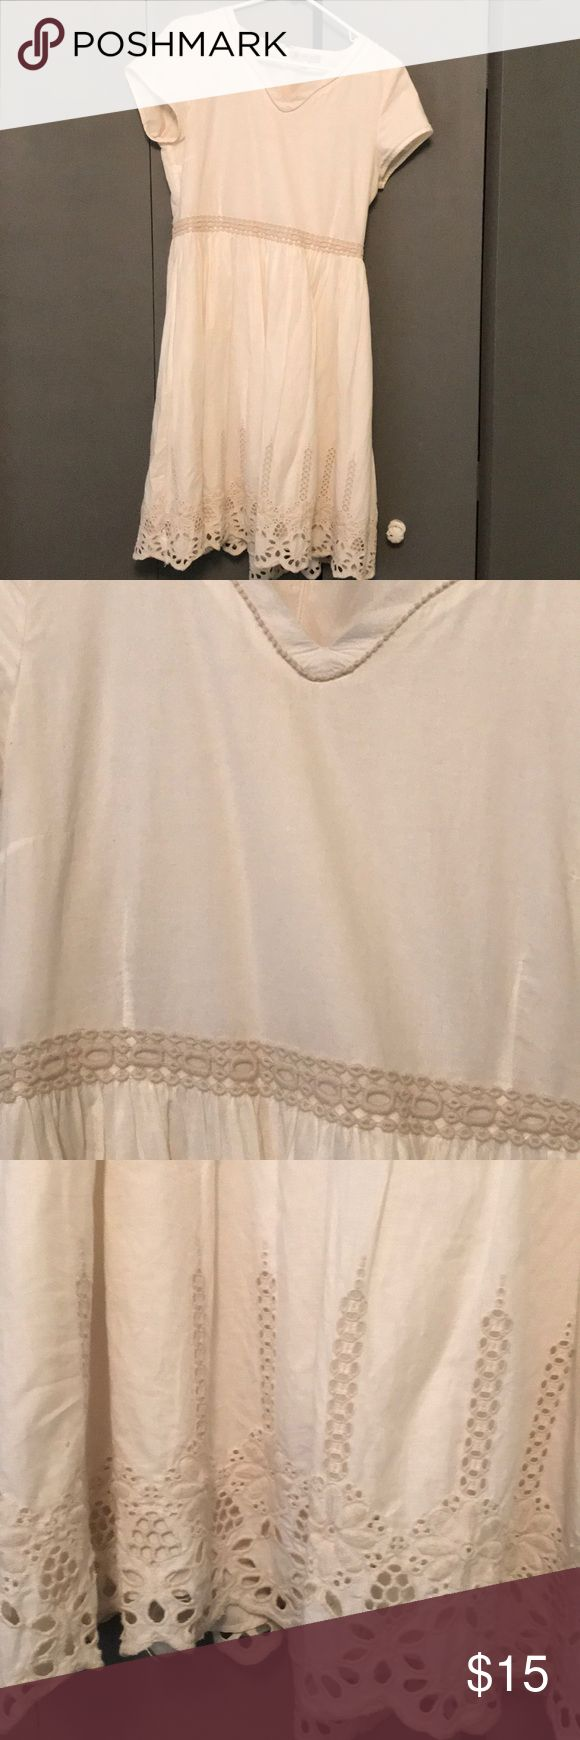 Cream mid-length dress w/embroidery detail size M Cute and comfortable cream dress with embroidered detail on collar, waist, and bottom of dress. Hits just below the knee and has cap-sleeves. Worn for a wedding and a few times afterwards. Just a little wrinkly, but in great condition besides that! Message for details! Downeast Dresses Midi